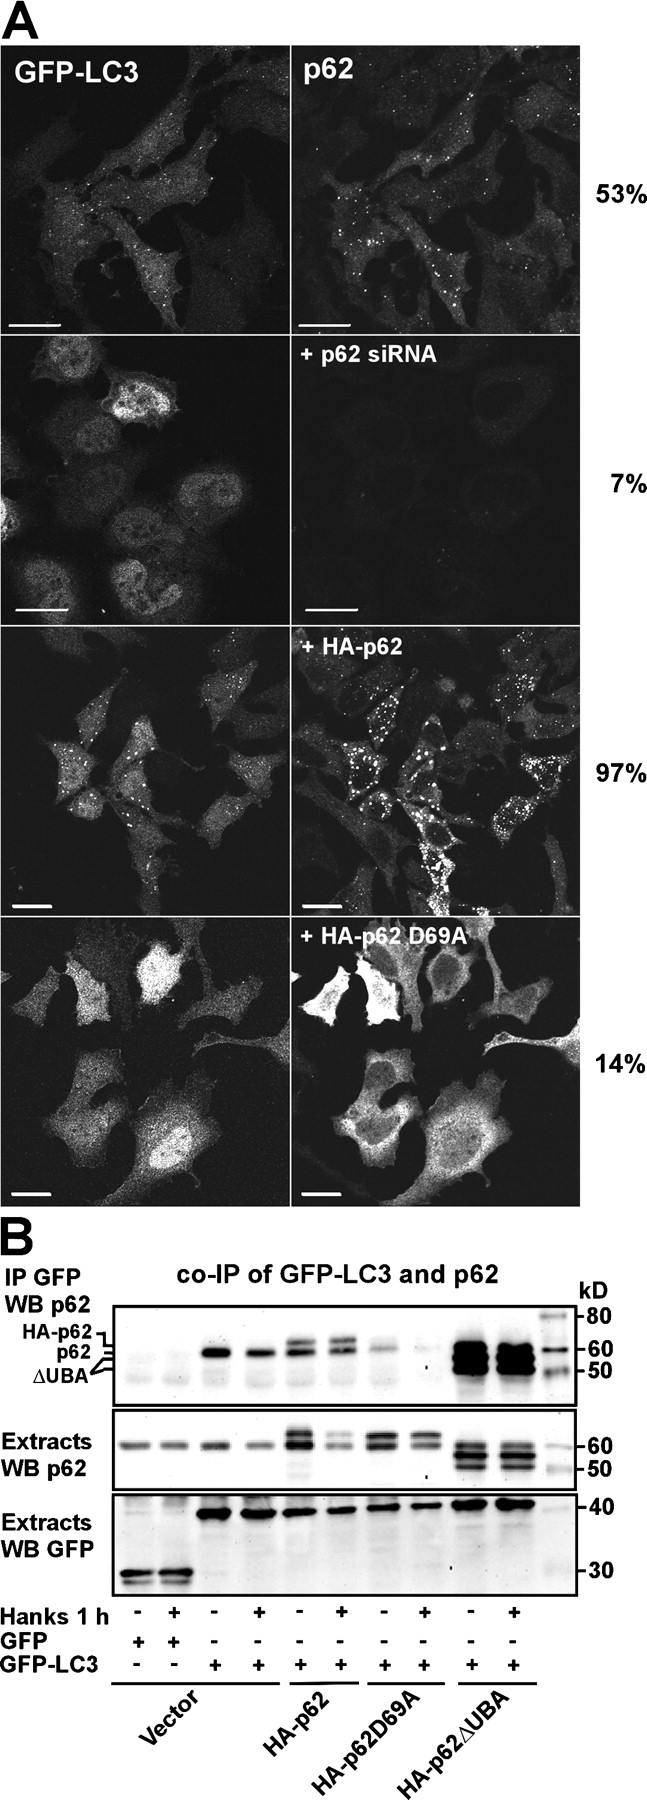 p62 is required for the formation of GFP-LC3–positive punctuated structures in HeLa cells. (A) HeLa cells transiently transfected with GFP-LC3 alone or cotransfected with siRNA against p62, HA-p62, or HA-p62 D69A were either left in normal medium or starved for amino acids for 1 h. The cells were fixed, and p62 was stained using a p62 mAb. More than 200 randomly selected cells for each condition were scored for the cytoplasmic pattern of GFP-LC3 as either diffuse or punctuate. The frequency of GFP-LC3–positive cells with punctuate localization are indicated to the right. (B) Endogenous p62 as well as coexpressed myc-tagged wild-type p62 or a UBA deletion mutant of p62 coimmunoprecipitated with GFP-LC3 from HeLa cell extracts. GFP or GFP-LC3 was immunoprecipitated from total cellular extracts after cotransfecting the indicated constructs. The cell cultures were either left untreated or starved for amino acids for 1 h as indicated. Copurified endogenous or ectopically expressed myc-tagged p62 constructs were detected using the p62 mAb. Bars, 20 μm.